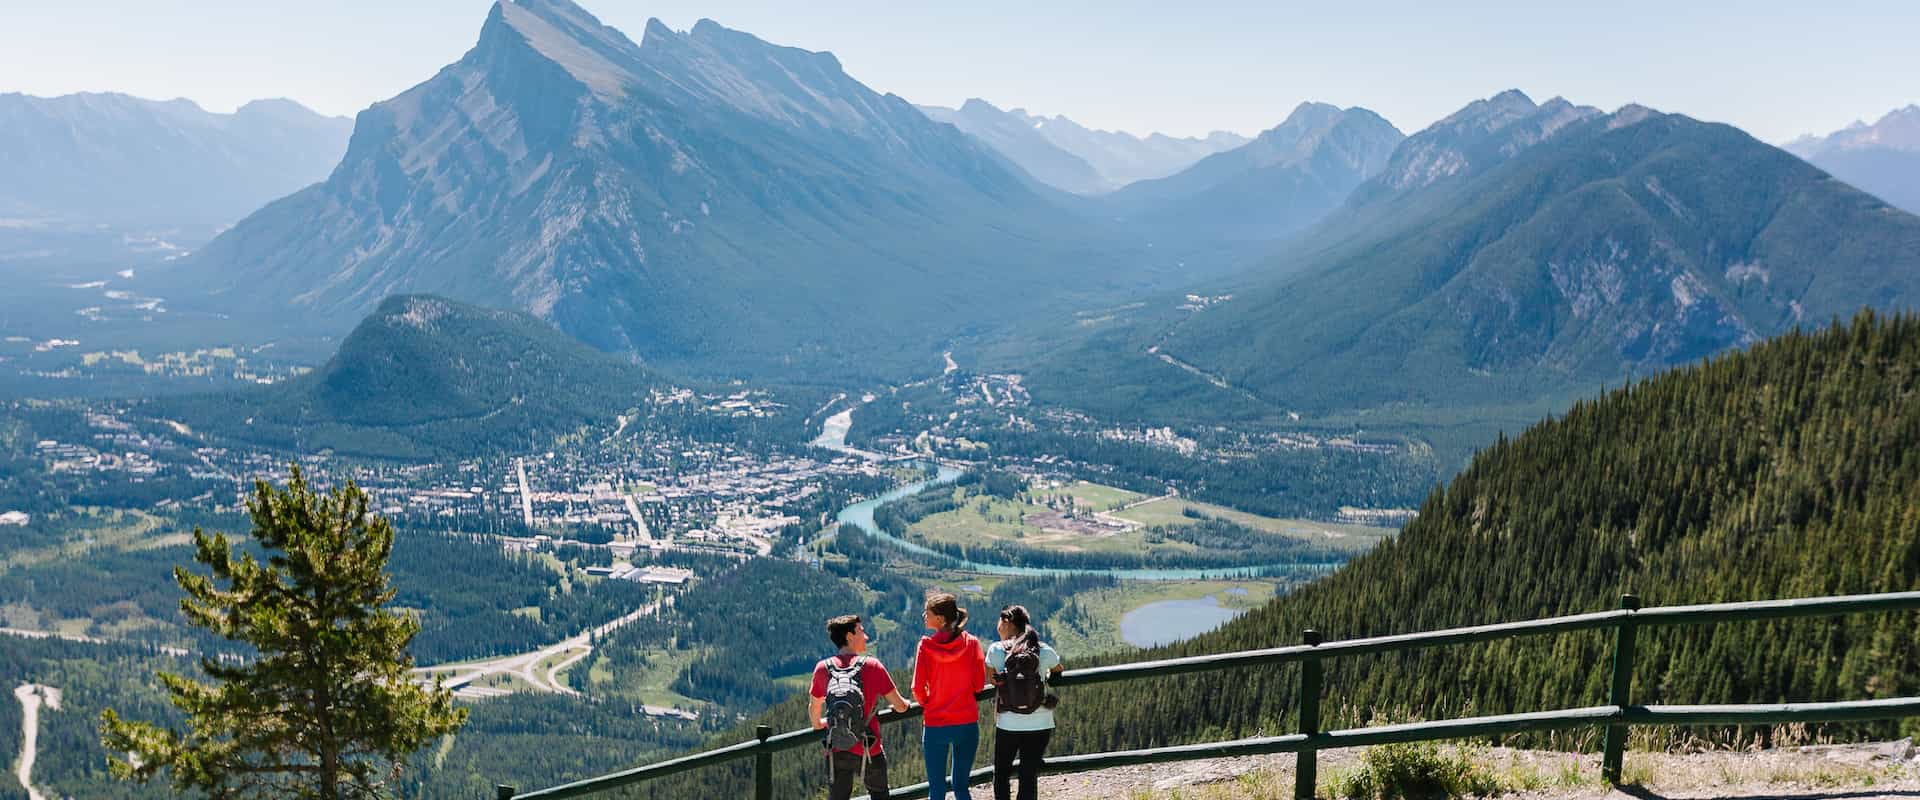 Views over the Bow Valley from the Banff Sightseeing Chairlift at Mount Norquay in Banff in the Canadian Rockies